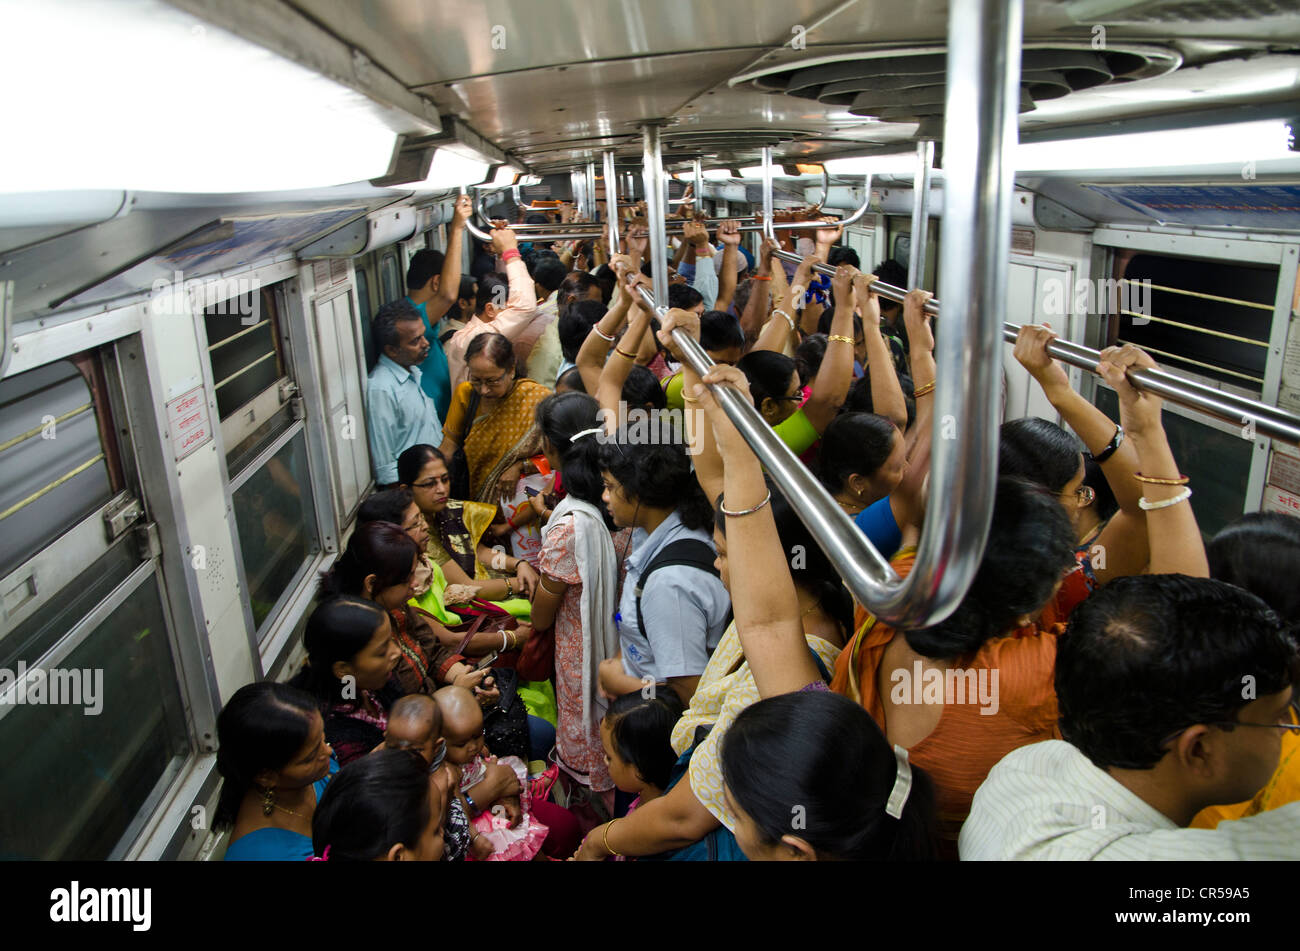 crowded subway indias first subway kolkata west bengal india stock photo royalty free image. Black Bedroom Furniture Sets. Home Design Ideas